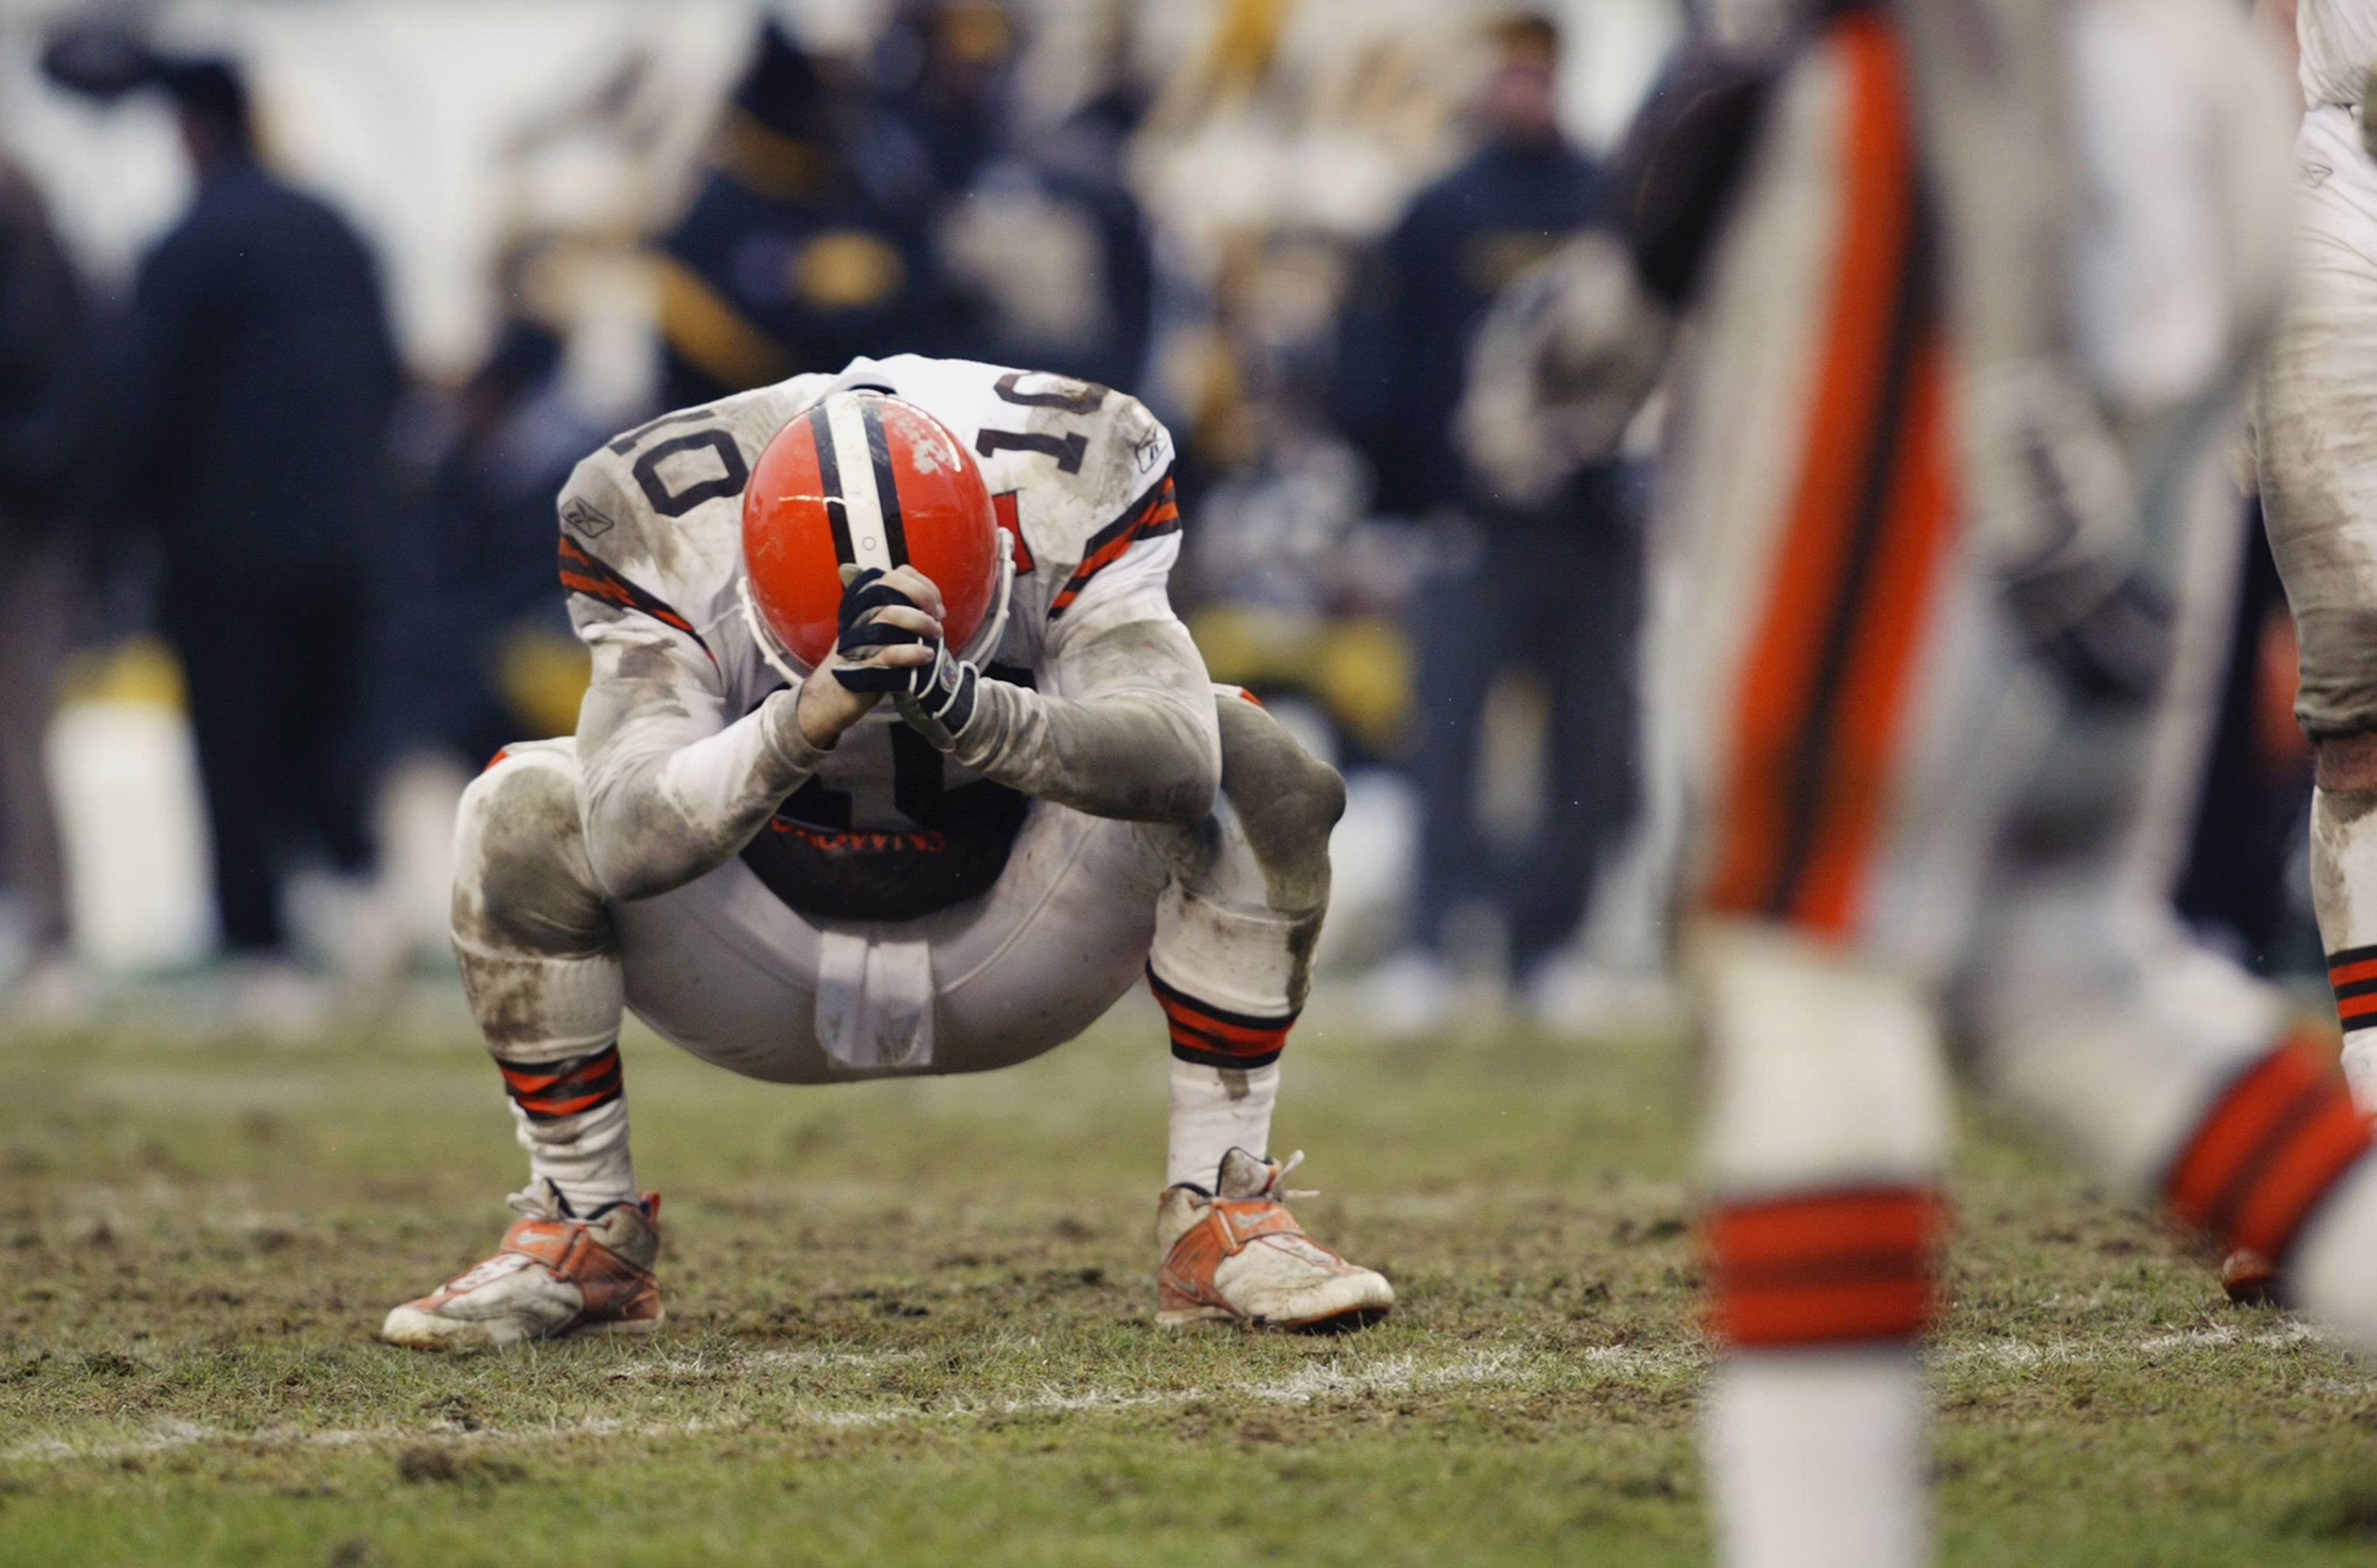 Kelly Holcomb of the Cleveland Browns looks down in frustration.